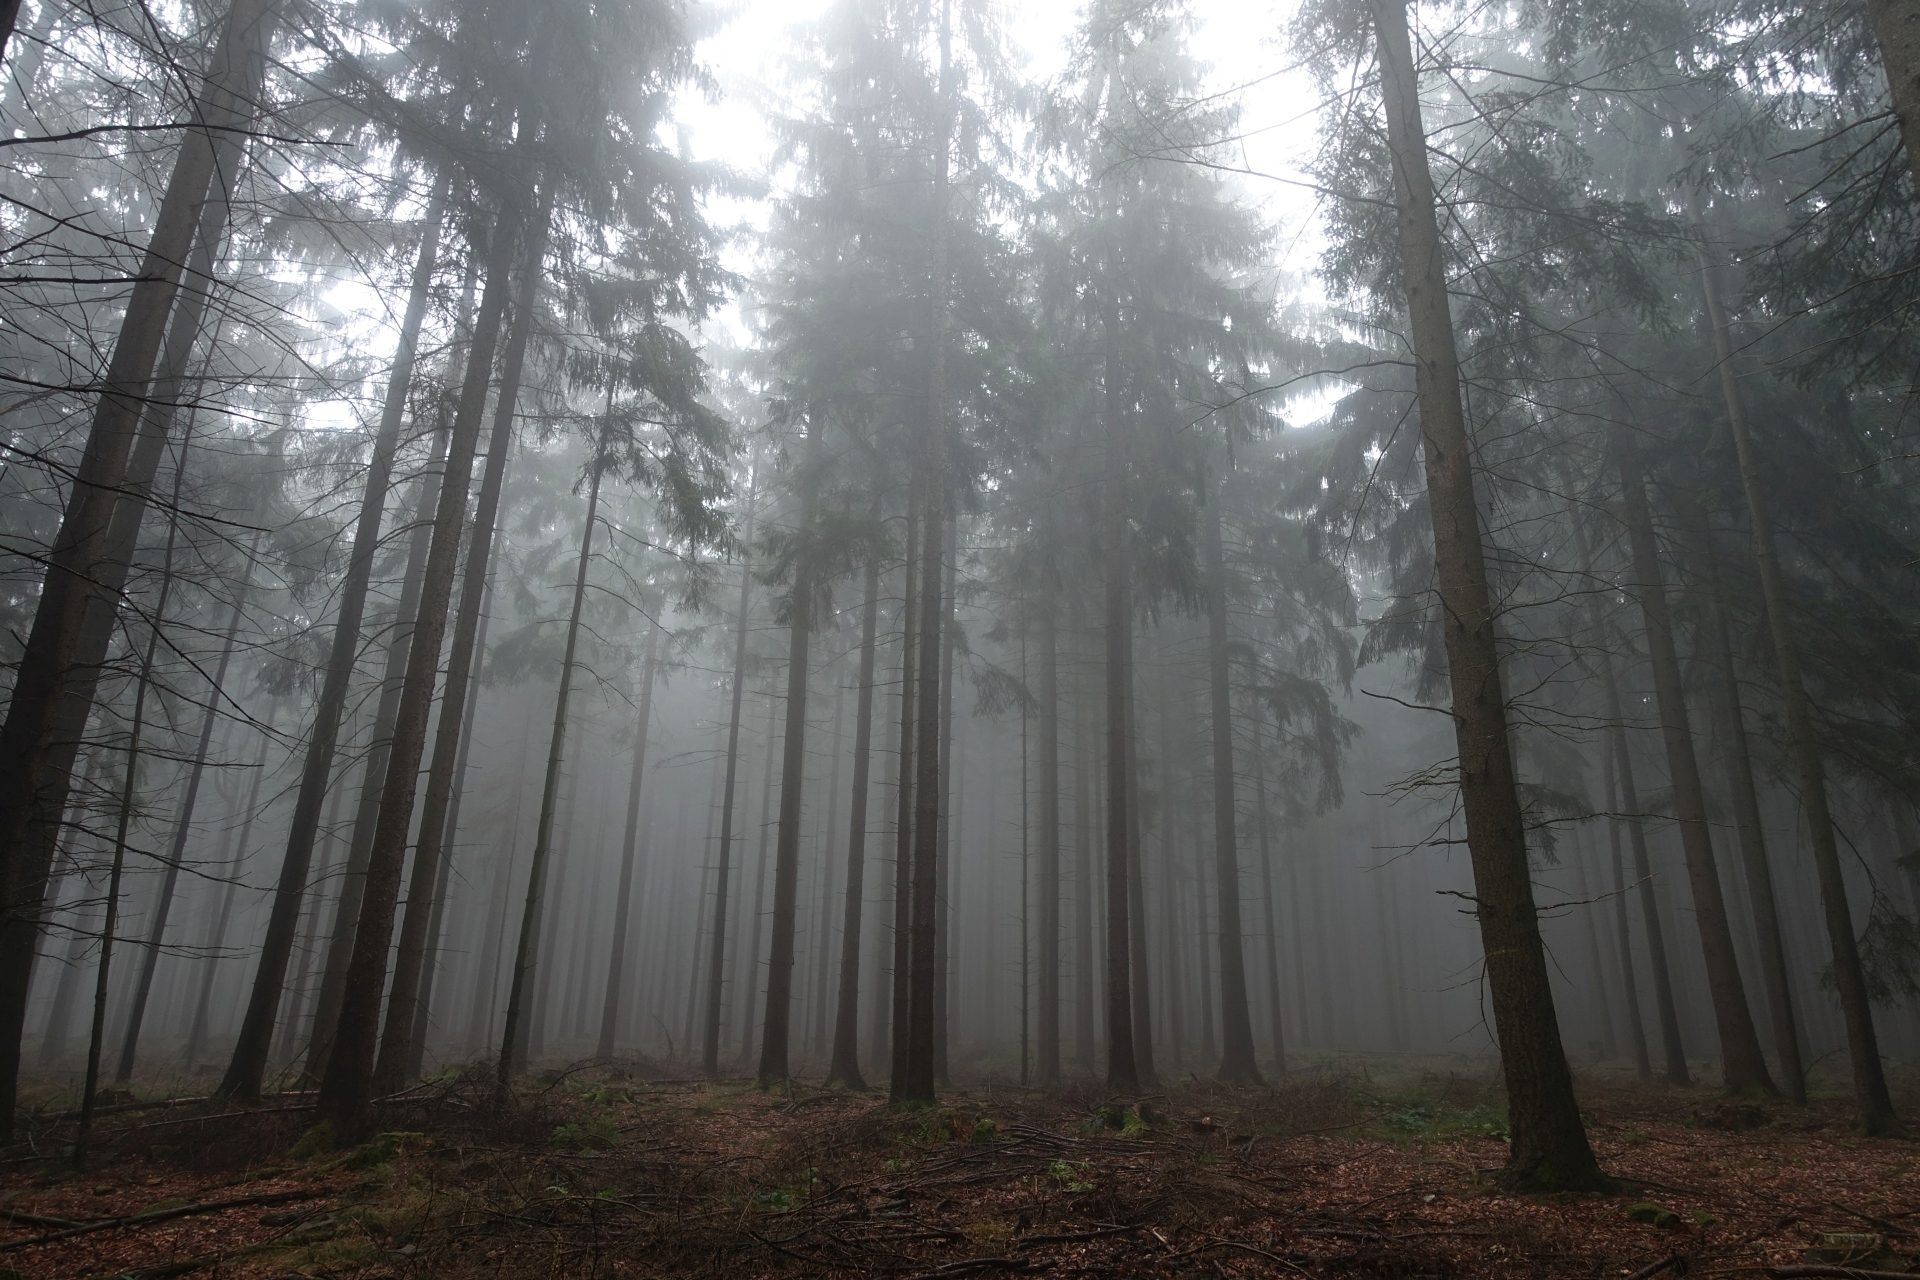 Misty Mountain Top in the Forest